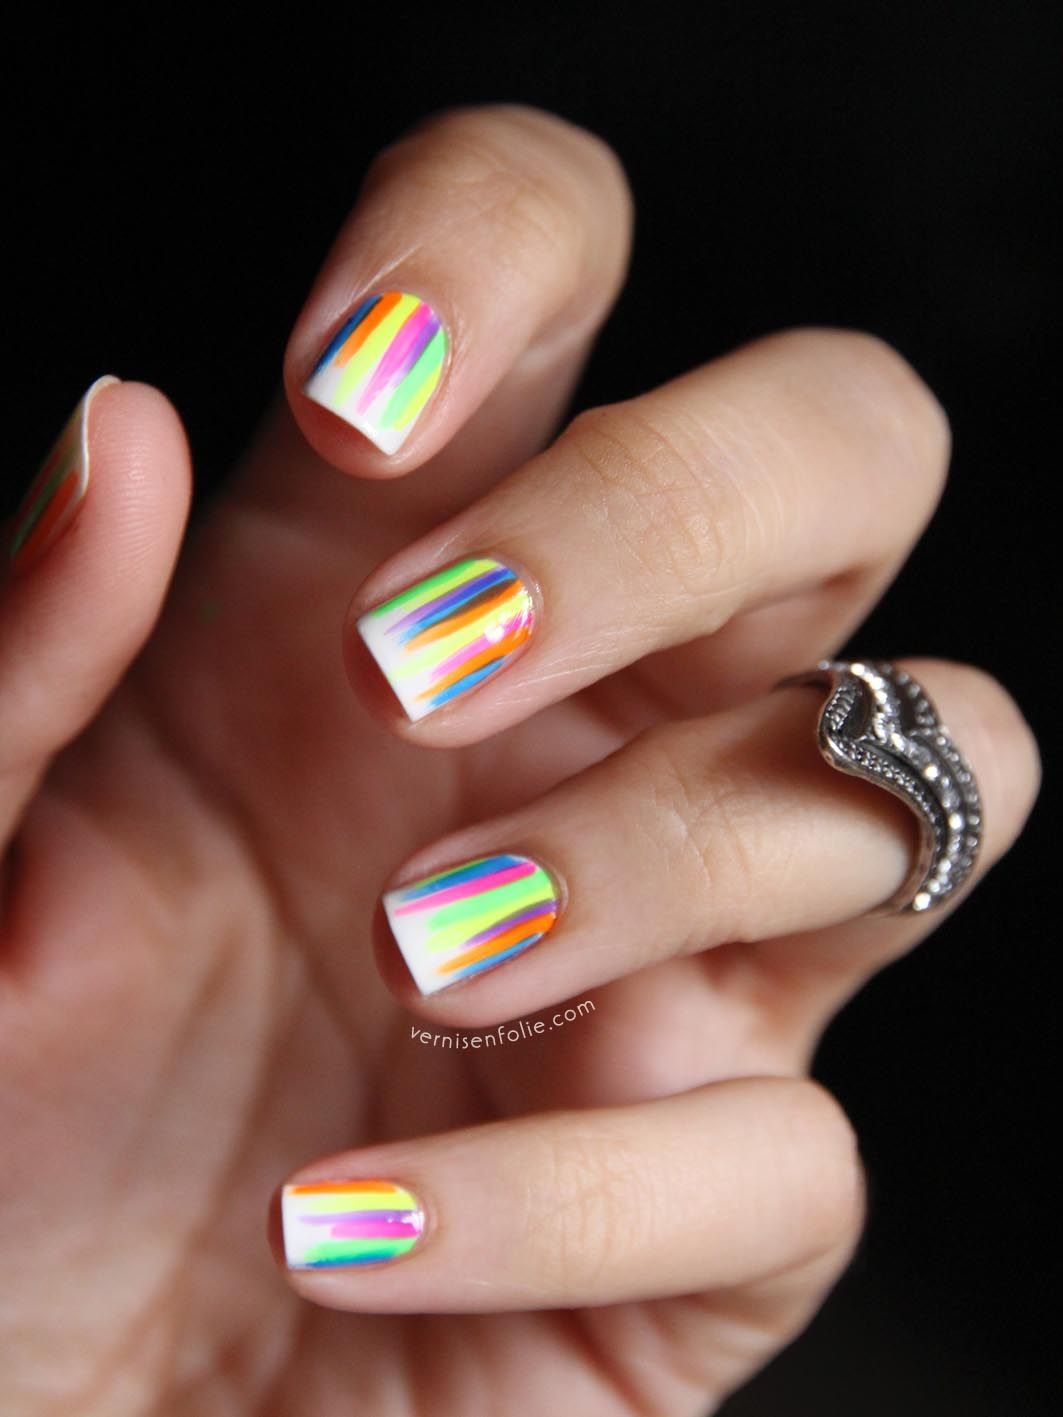 50 easy nail designs - Nail Designs Do It Yourself At Home